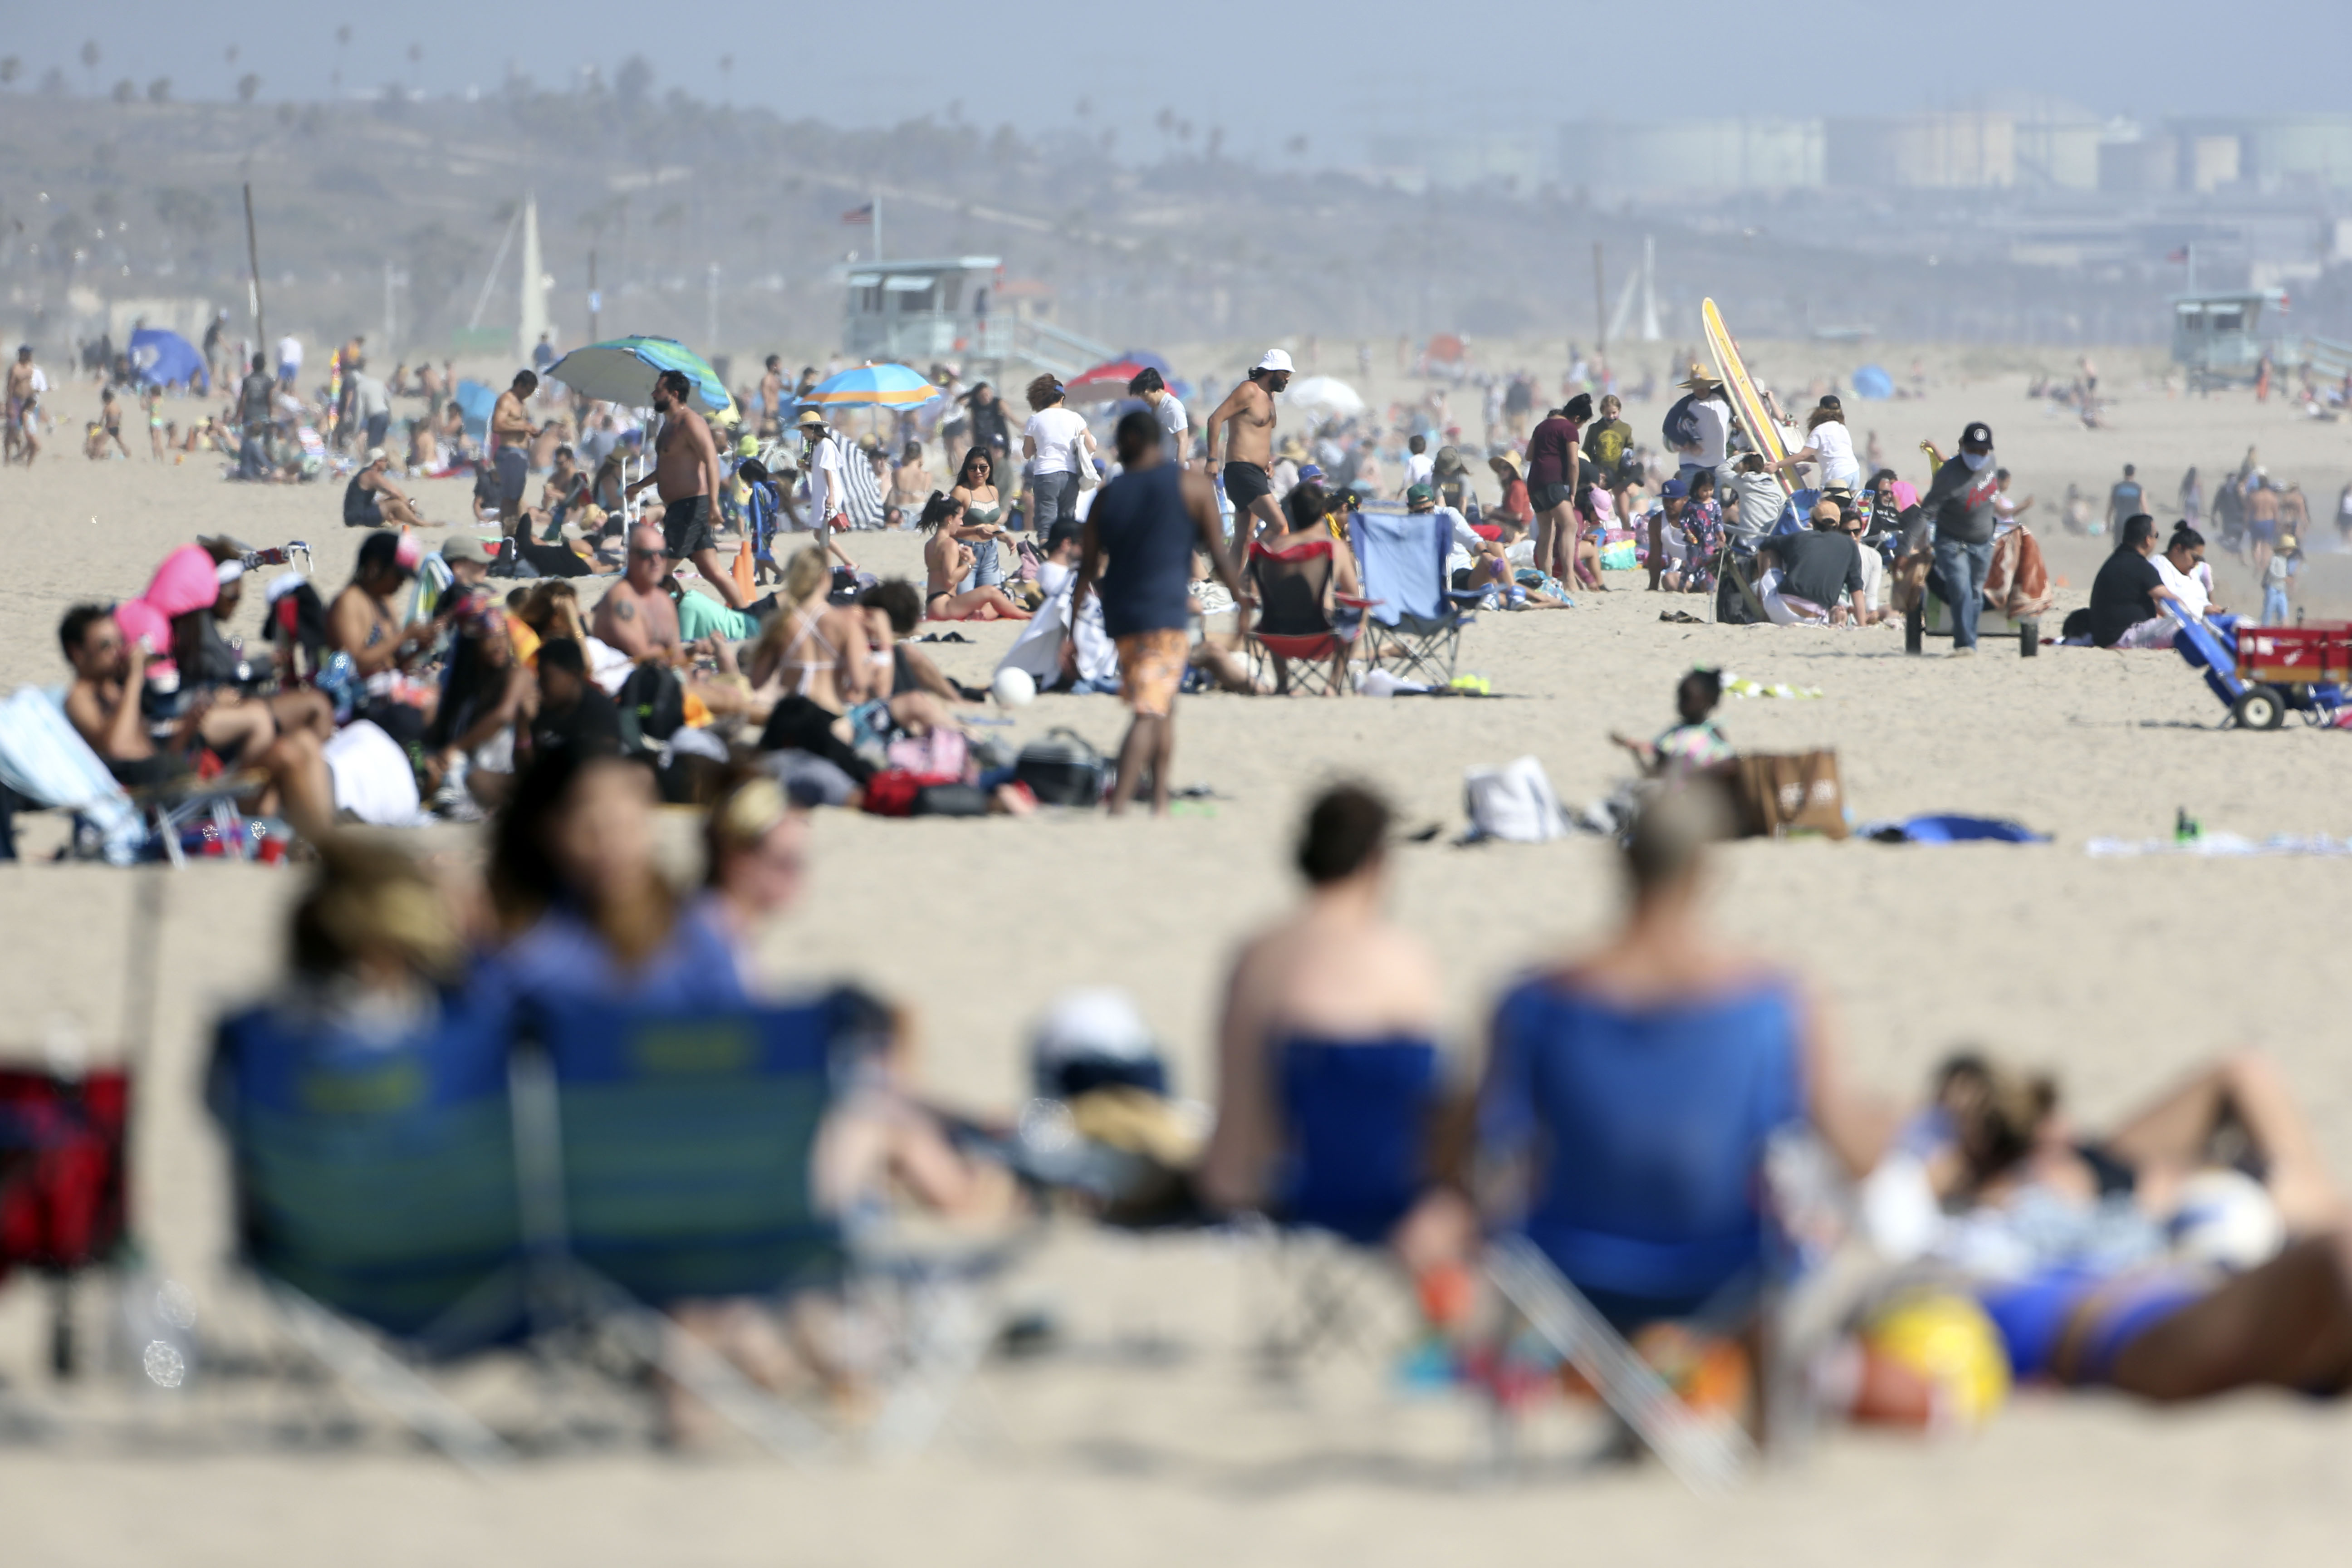 Los Angeles County Beaches Ordered To Close For Fourth Of July Weekend Amid Coronavirus Spike